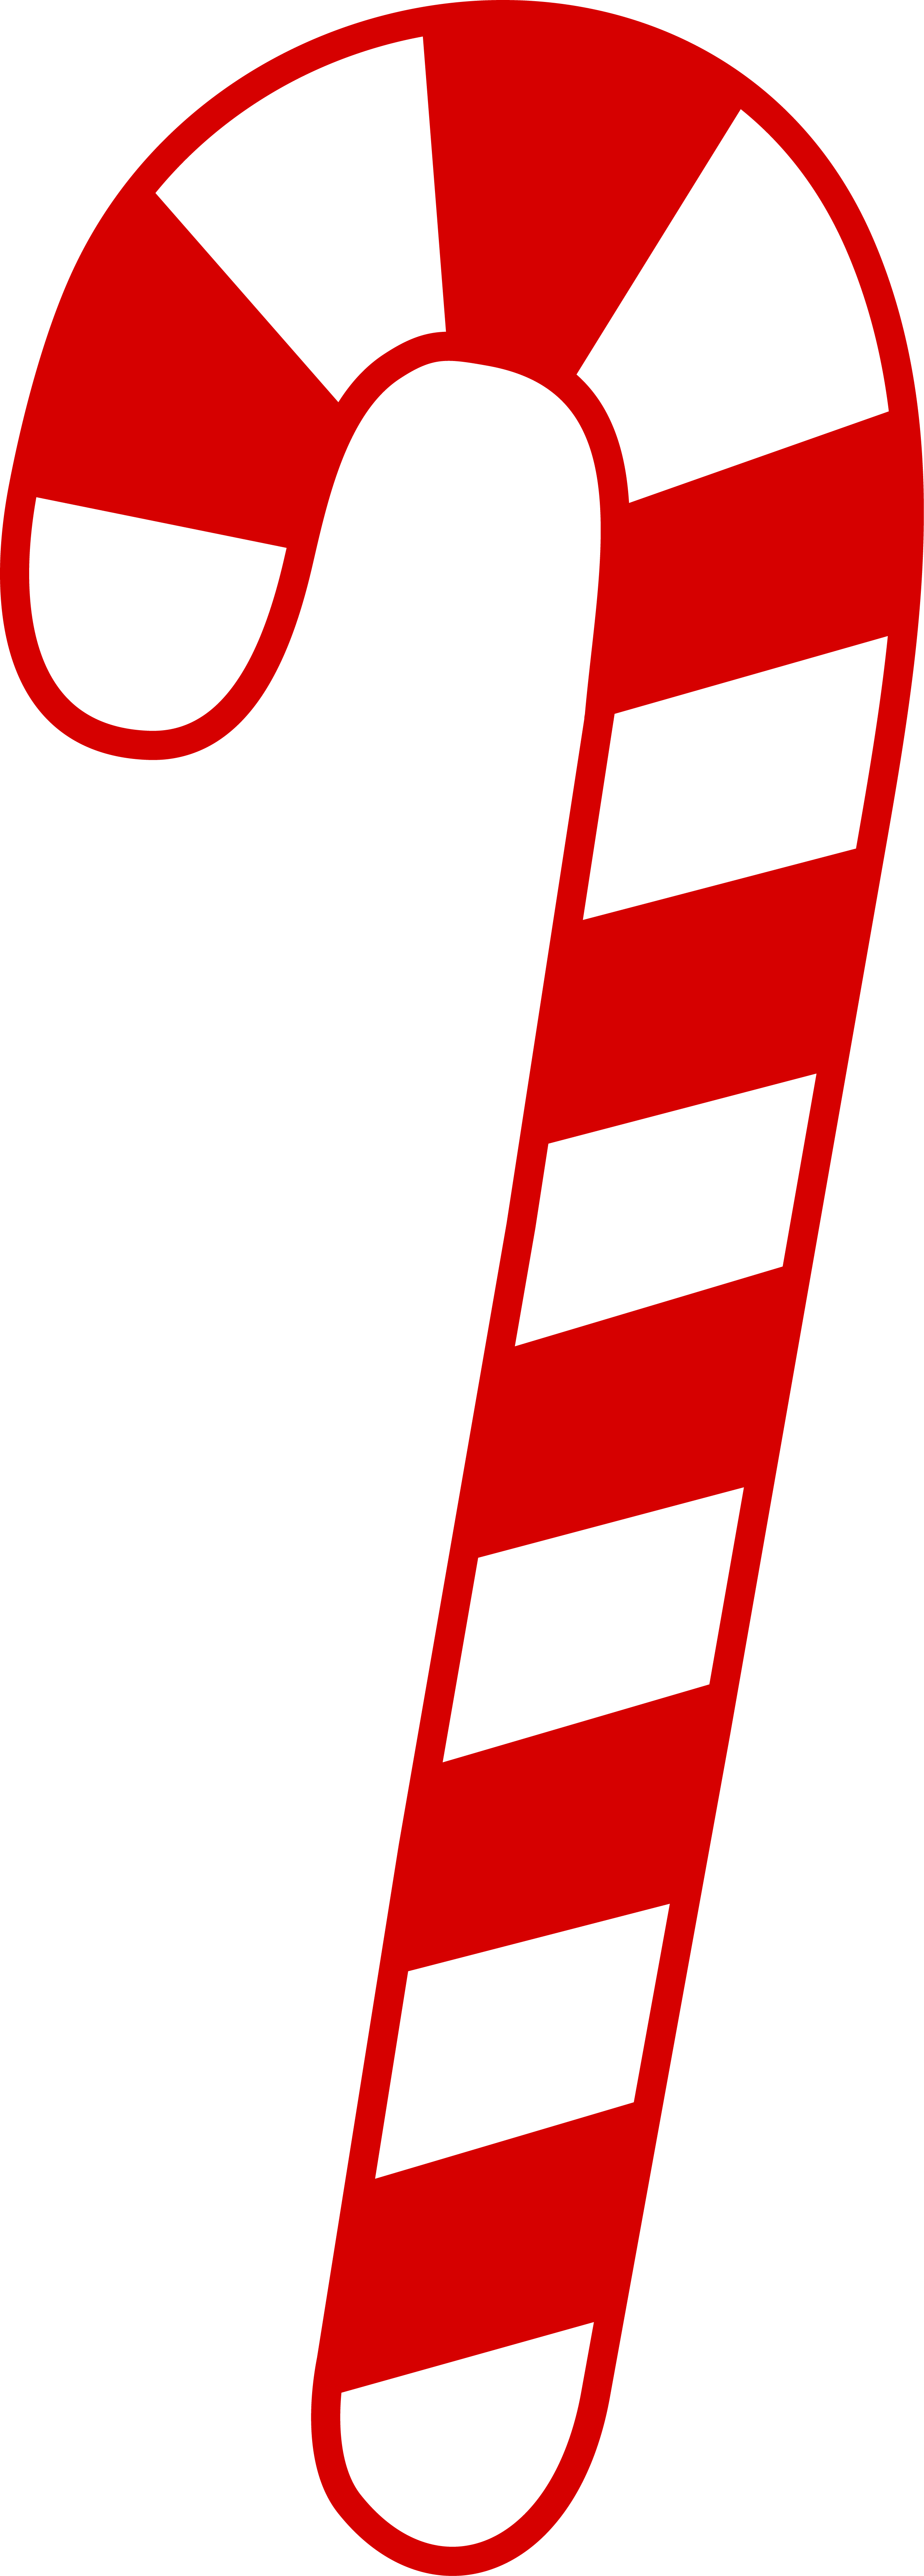 Candy cane clipart 2